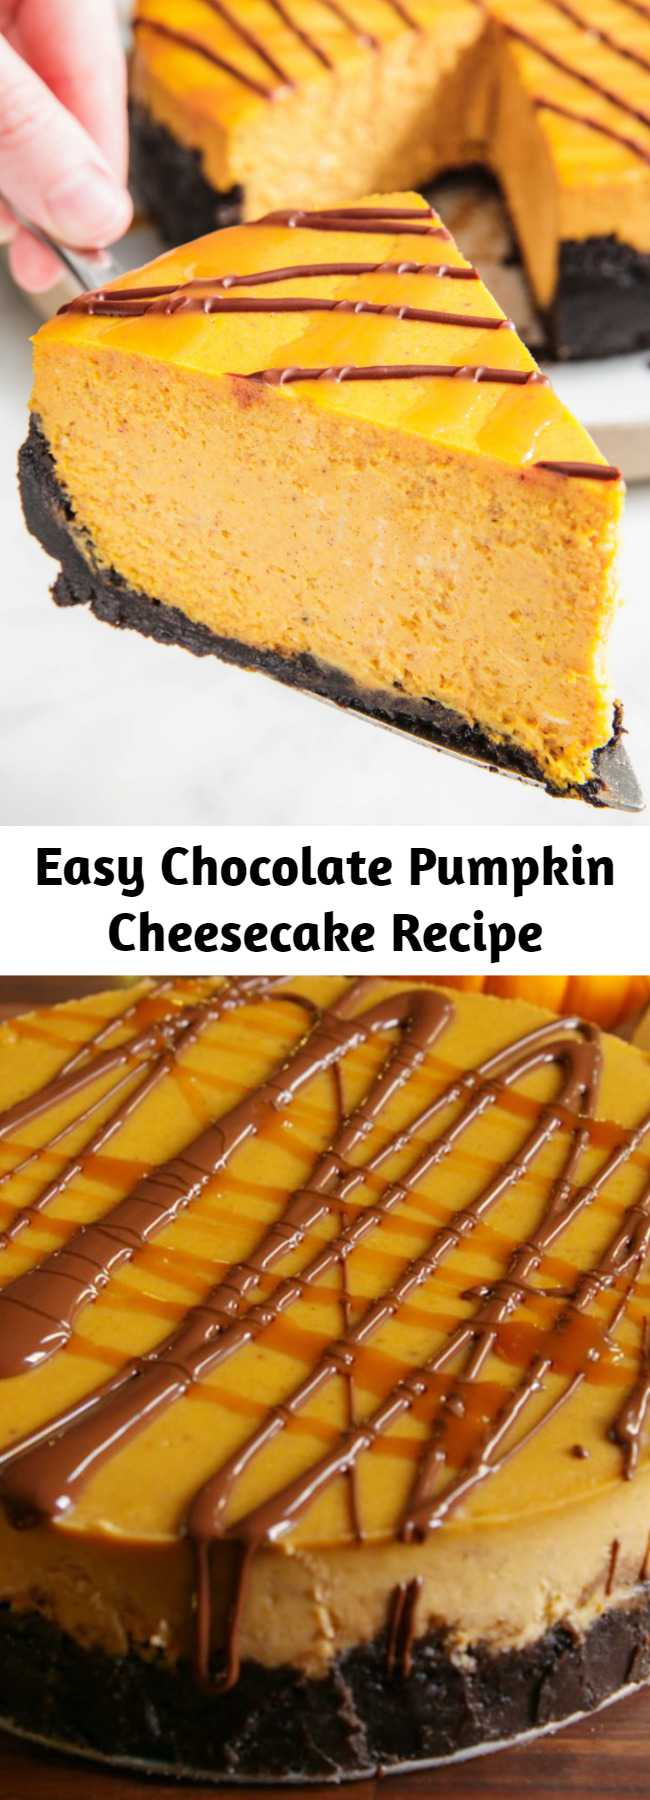 Easy Chocolate Pumpkin Cheesecake Recipe - Looking for an easy pumpkin dessert to make this Thanksgiving? This creamy pumpkin cheesecake with an Oreo crust is sure to impress. And we've got tons of cheesecake baking tips—like how to prevent your cheesecake from cracking—to set you up for success.